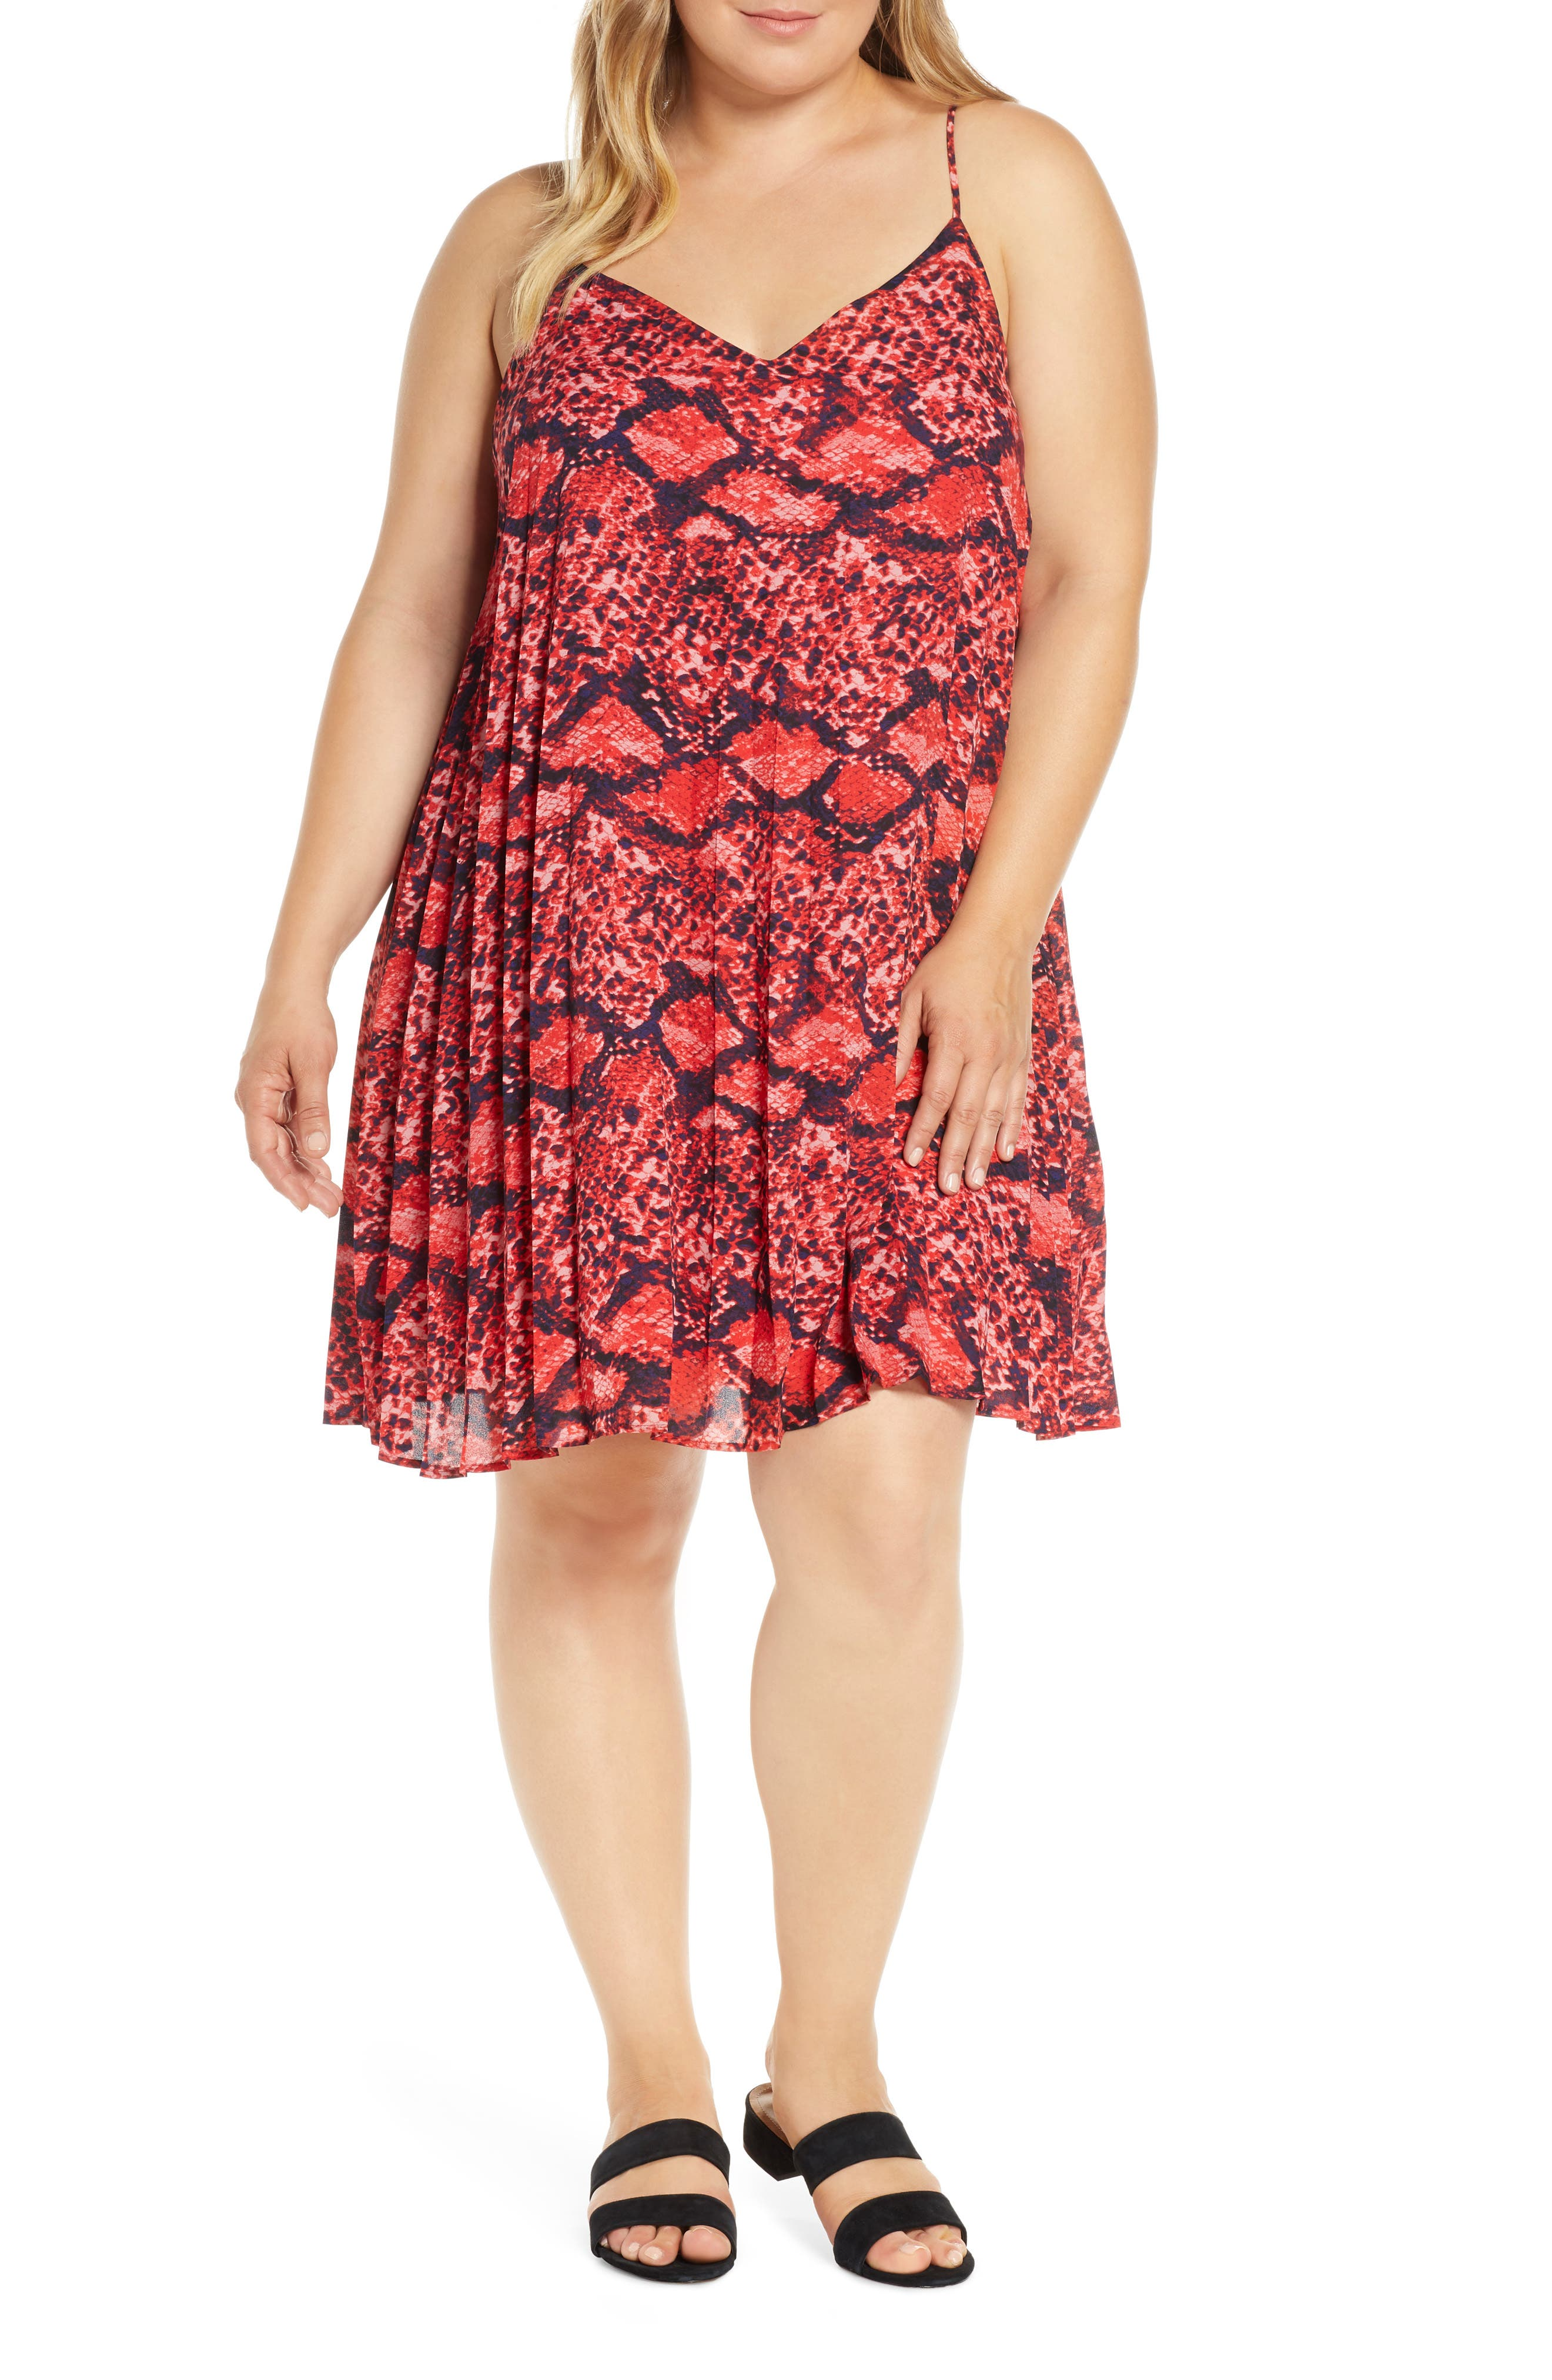 Plus Size Gibson X Hot Summer Nights Almost Ready Pleated Minidress, Red (Plus Size) (Nordstrom Exclusive)